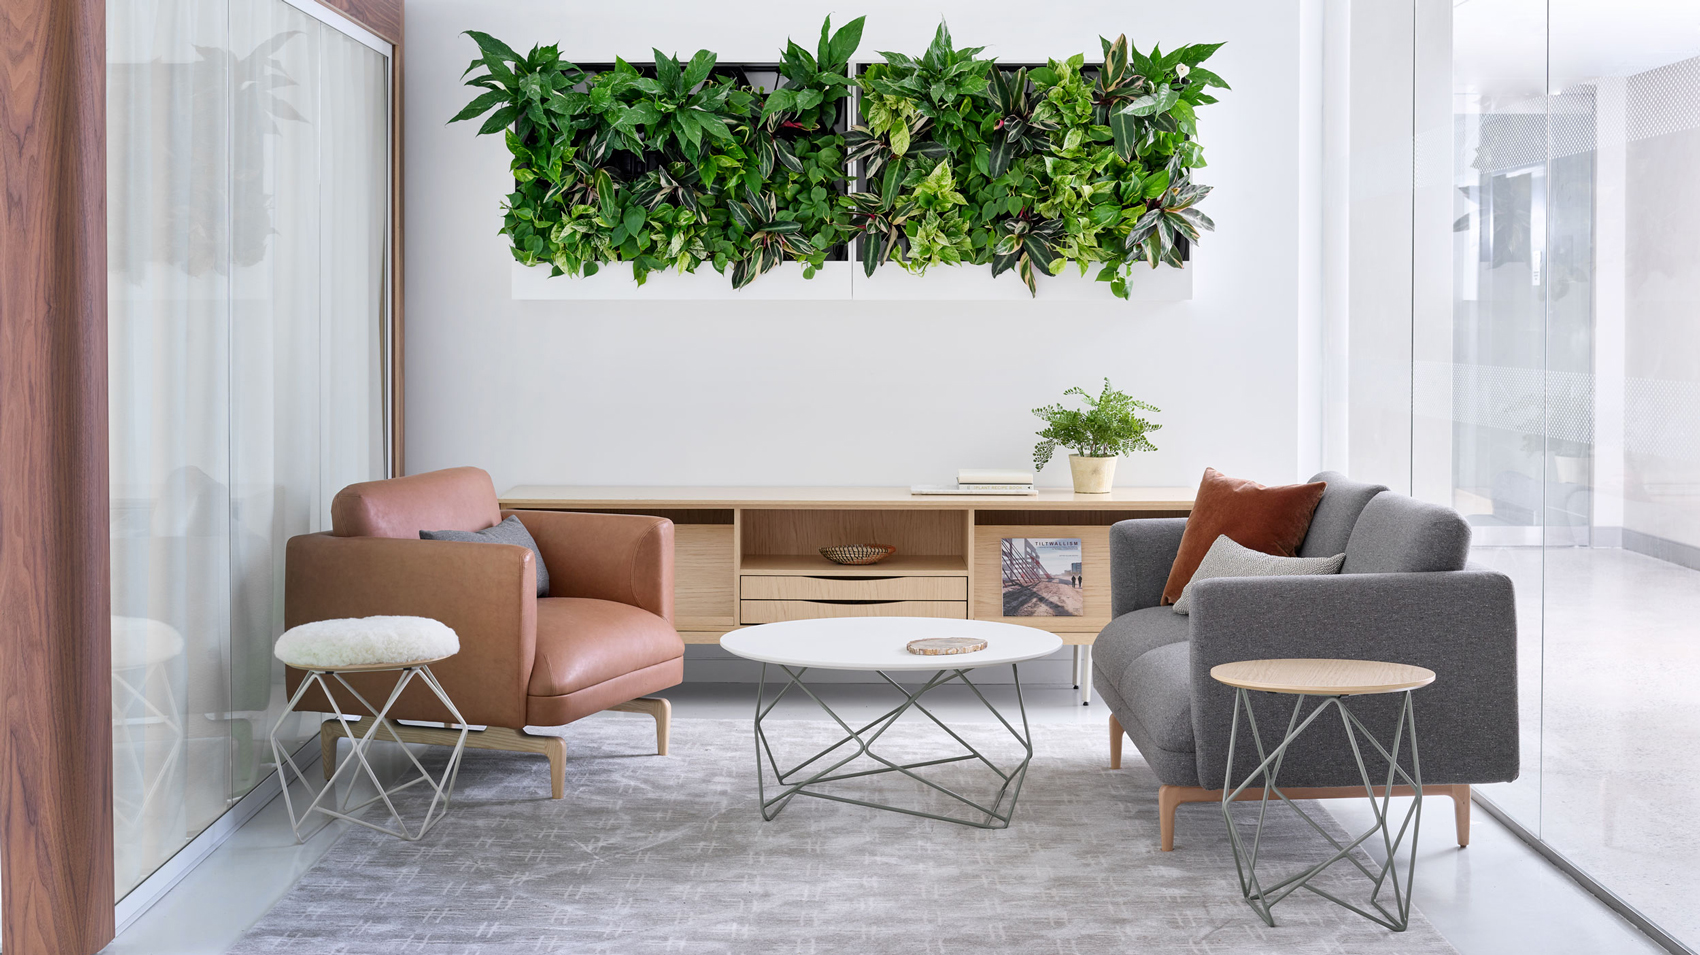 New York City Showroom featuring lounge area and living wall planter